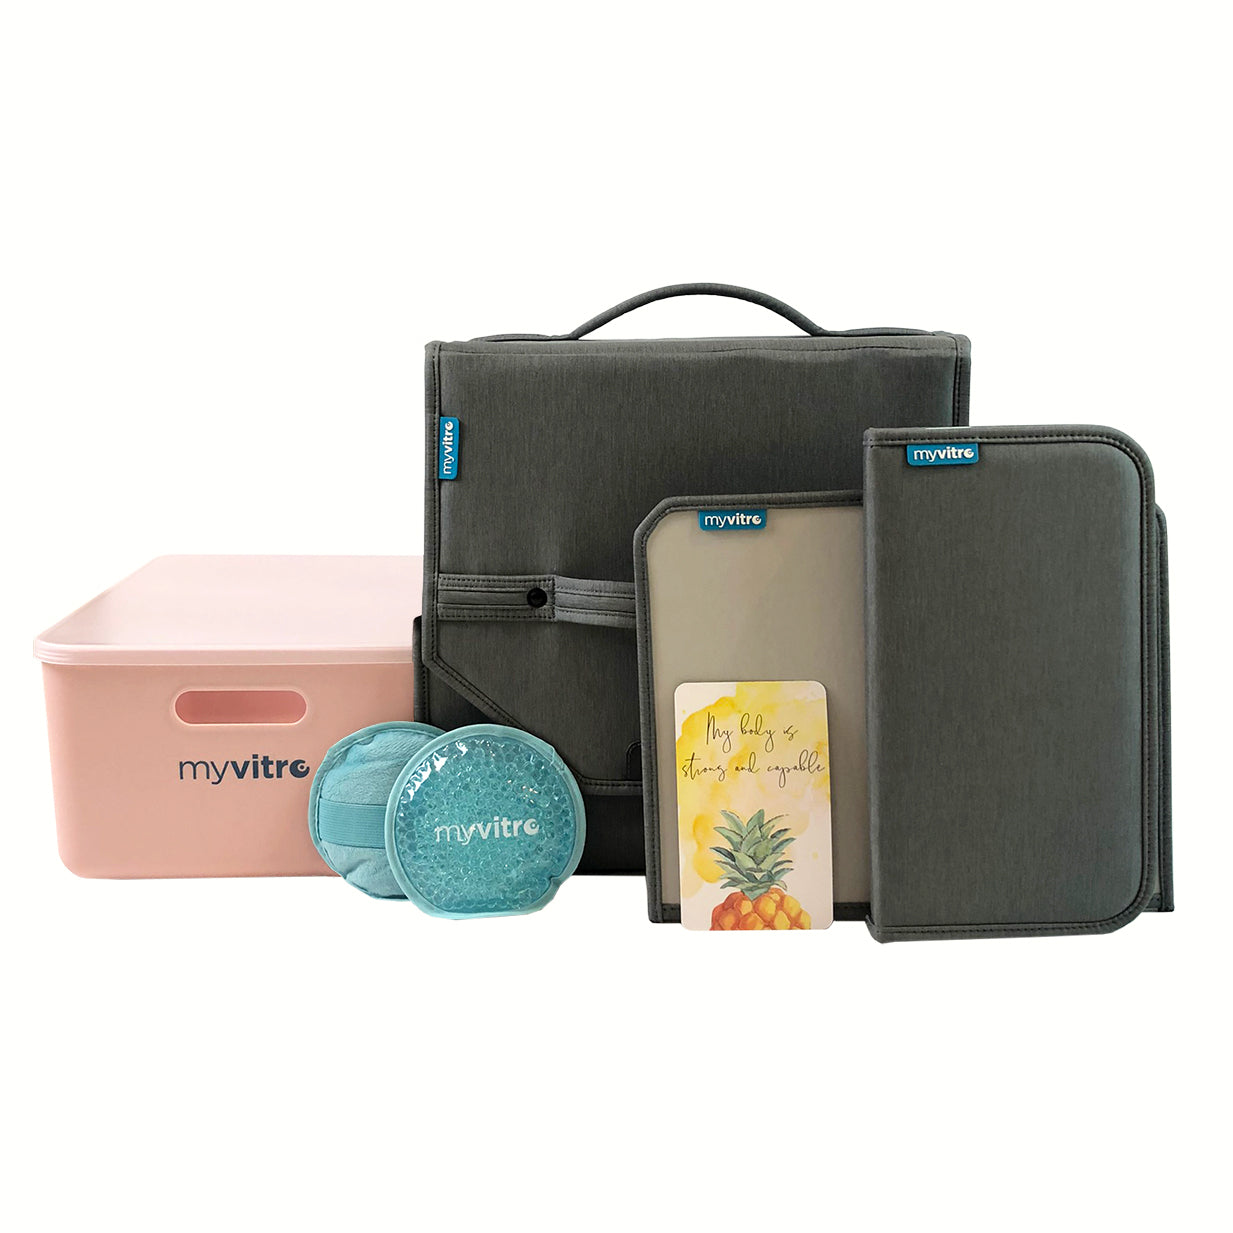 The Deluxe IVF Support Kit